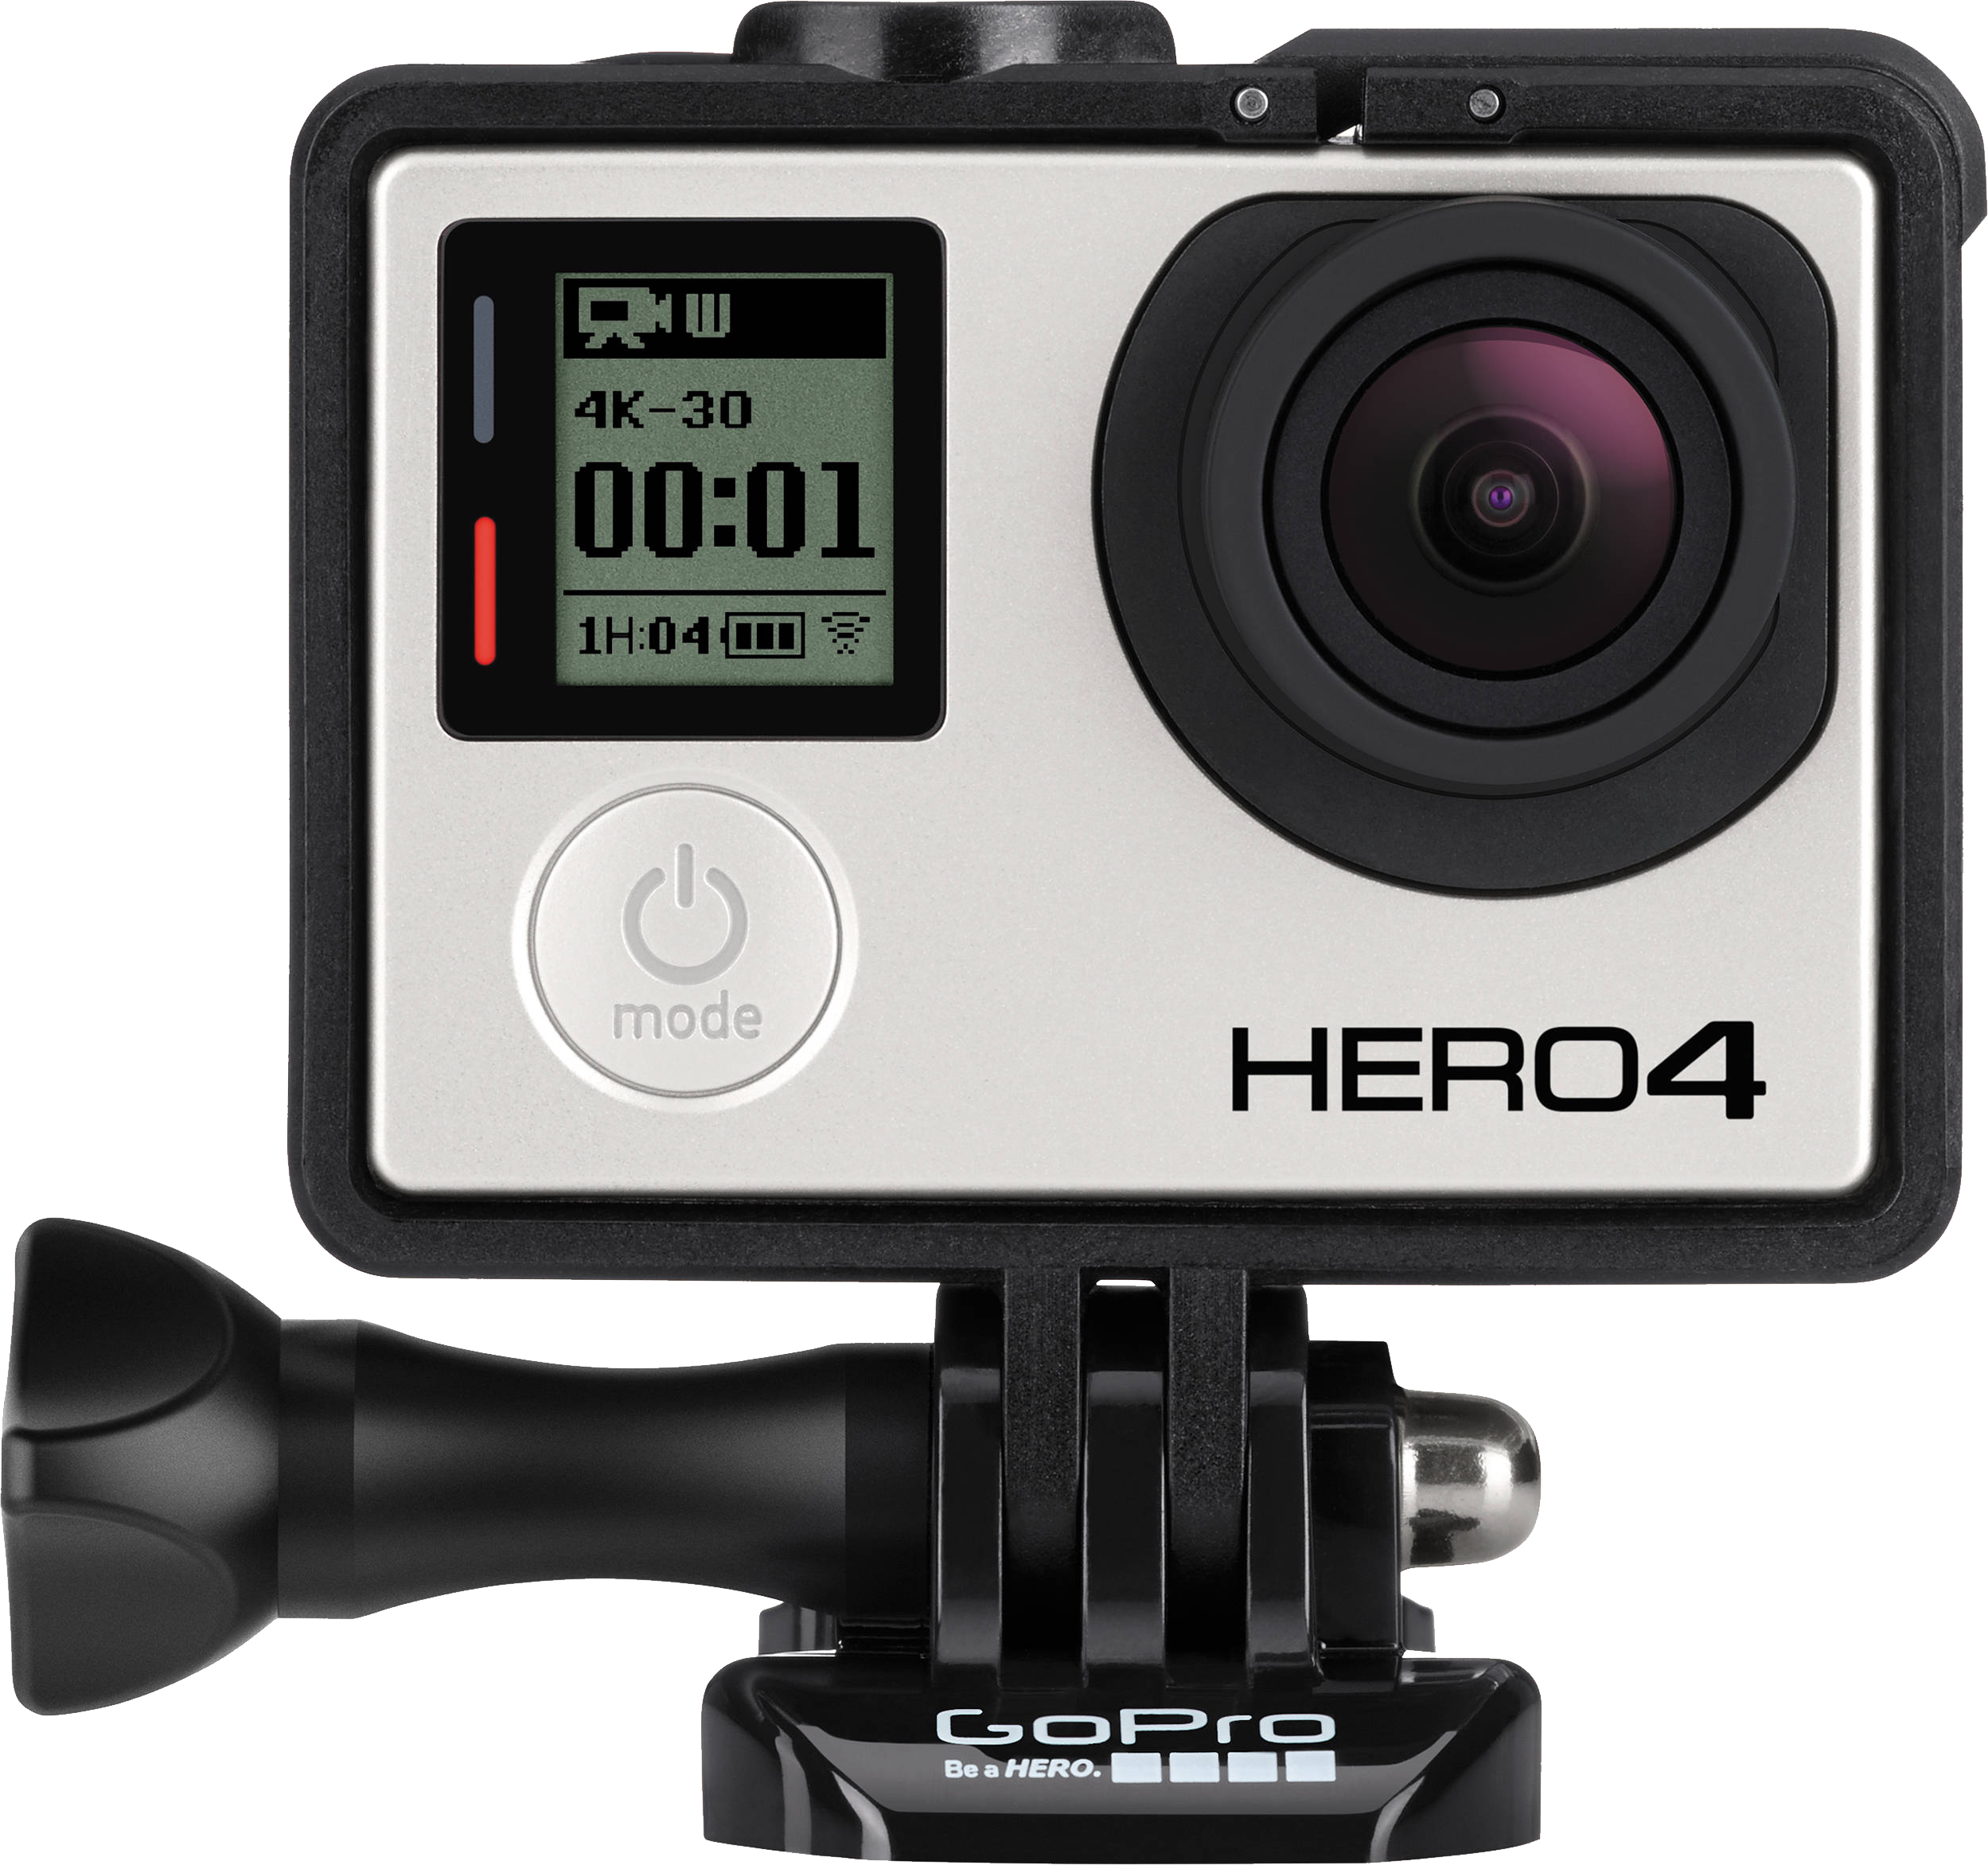 Gopro hero 3 clipart black and white download Gopro Camera PNG Transparent Gopro Camera.PNG Images. | PlusPNG black and white download